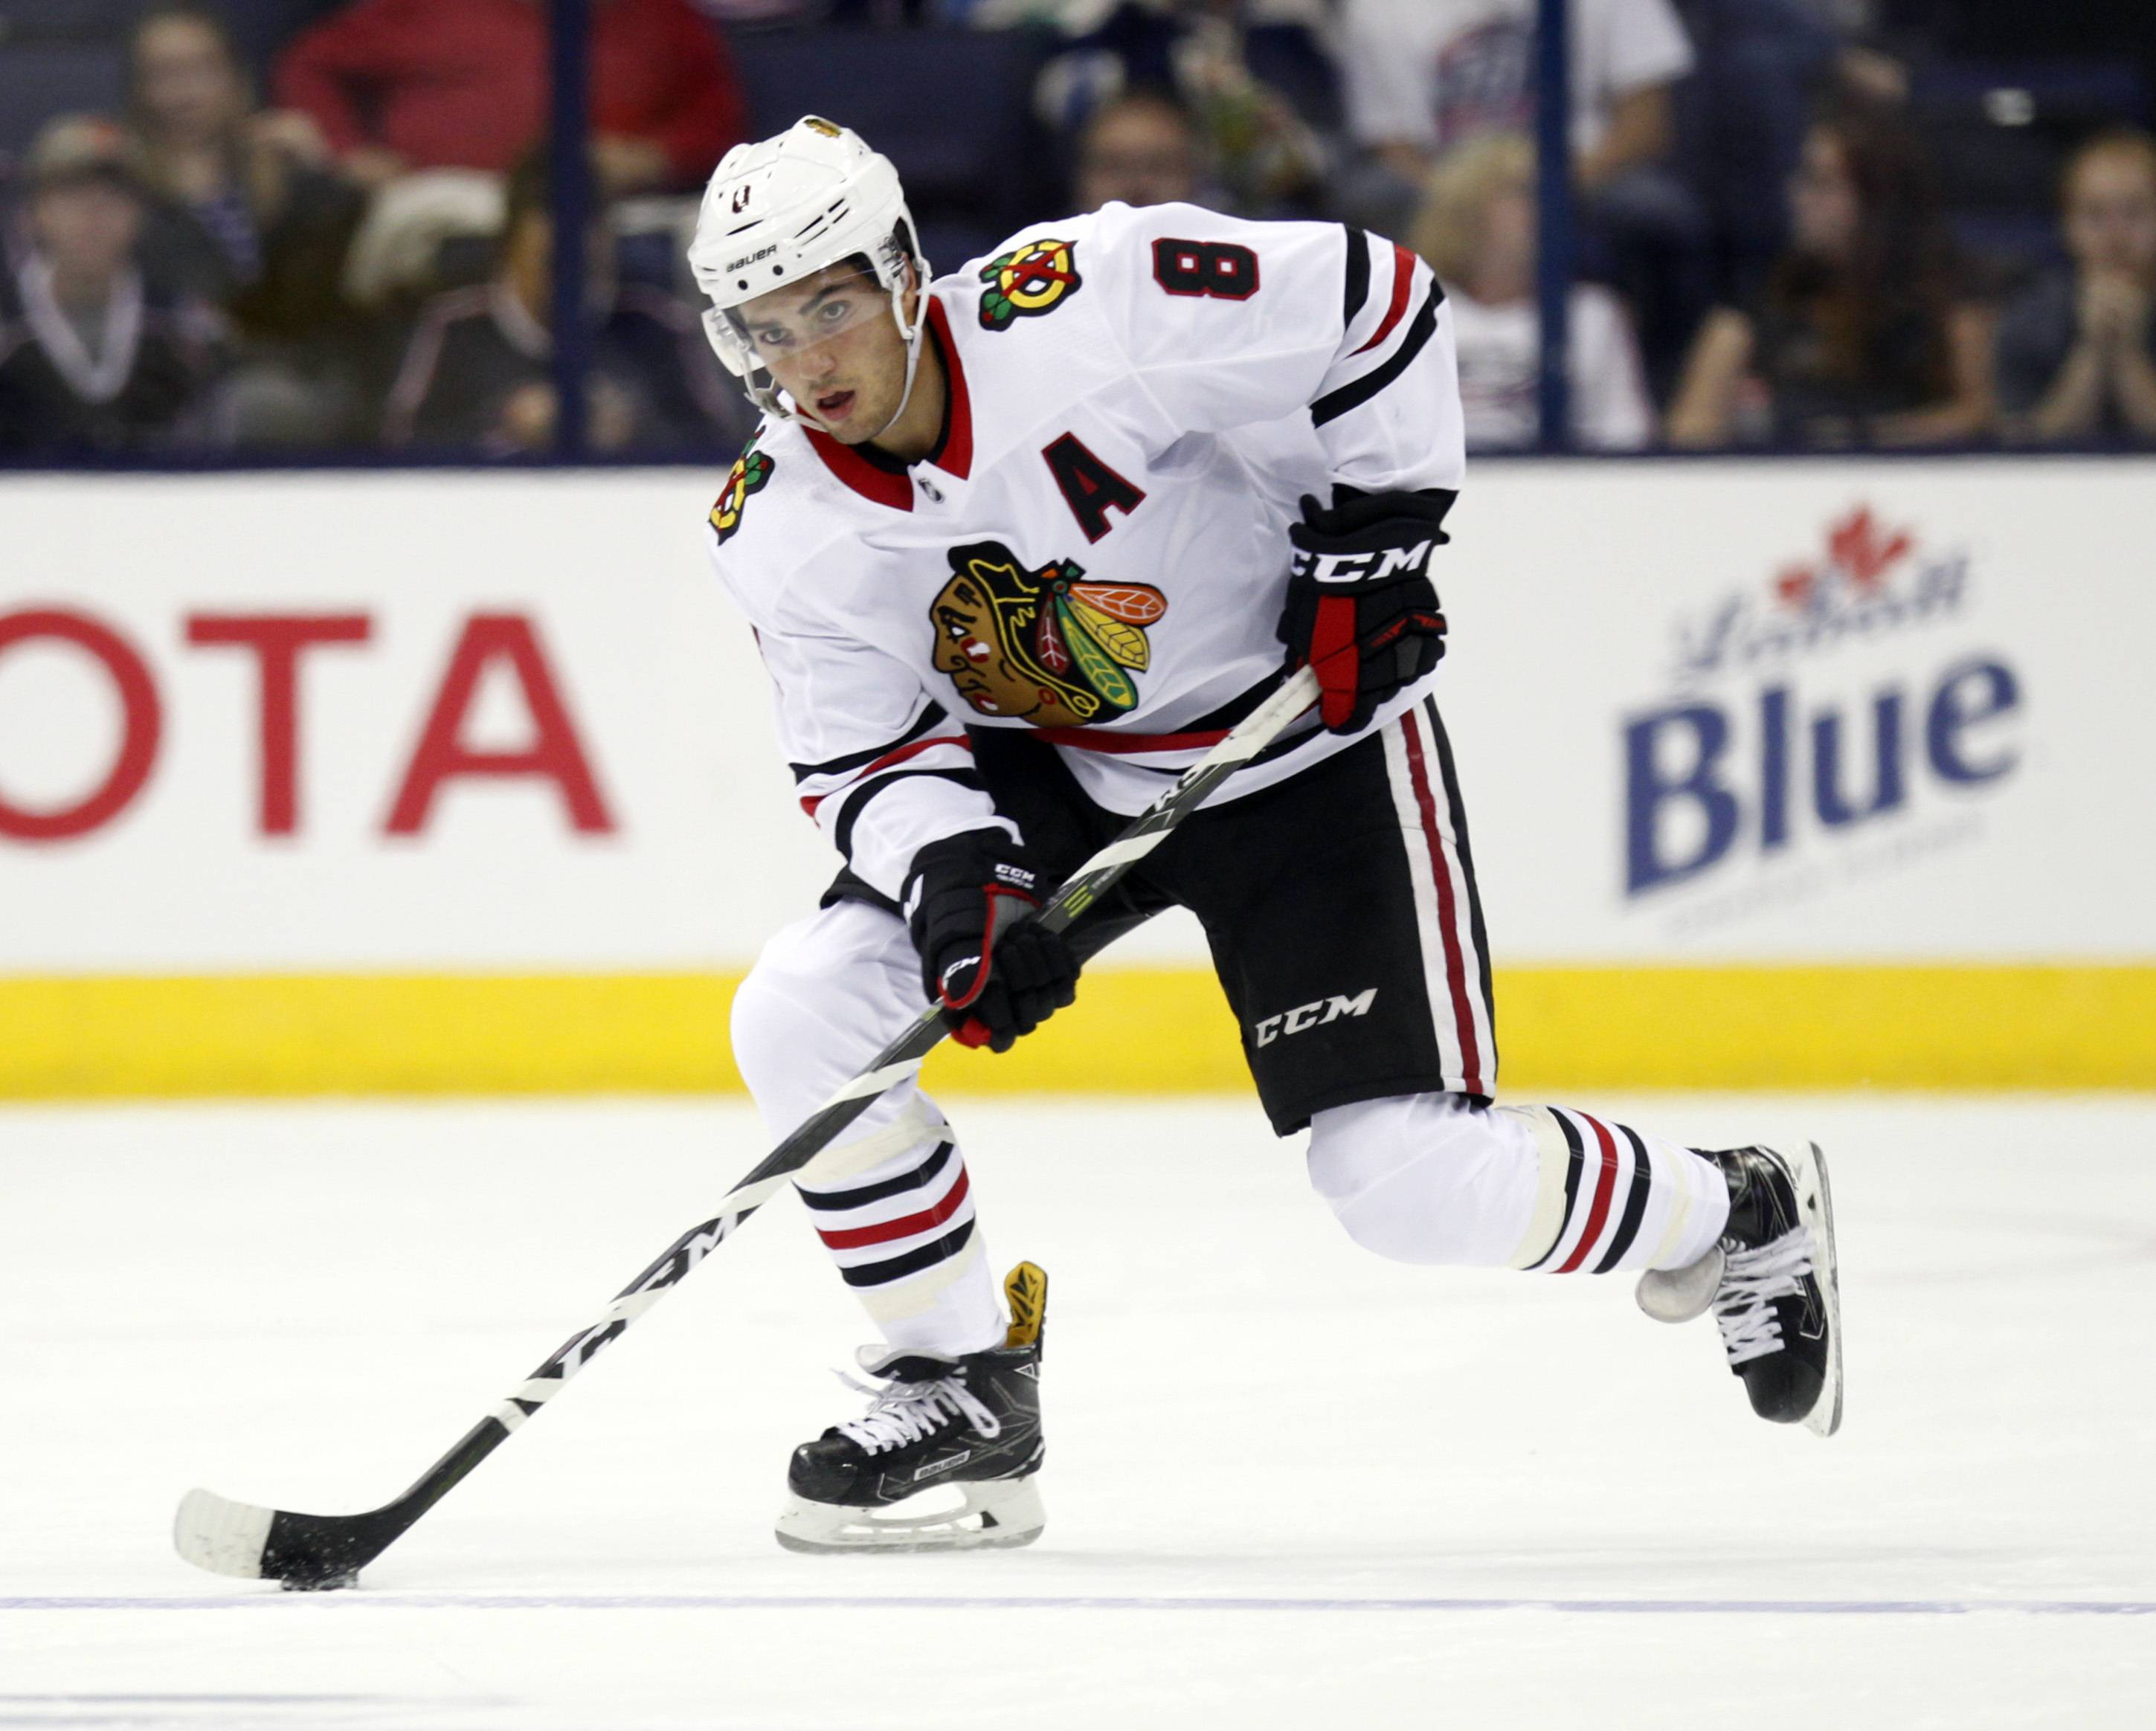 Chicago Blackhawks forward Nick Schmaltz carries the puck against the Columbus Blue Jackets during a preseason NHL hockey game in Columbus, Ohio, Tuesday, Sept. 19, 2017.